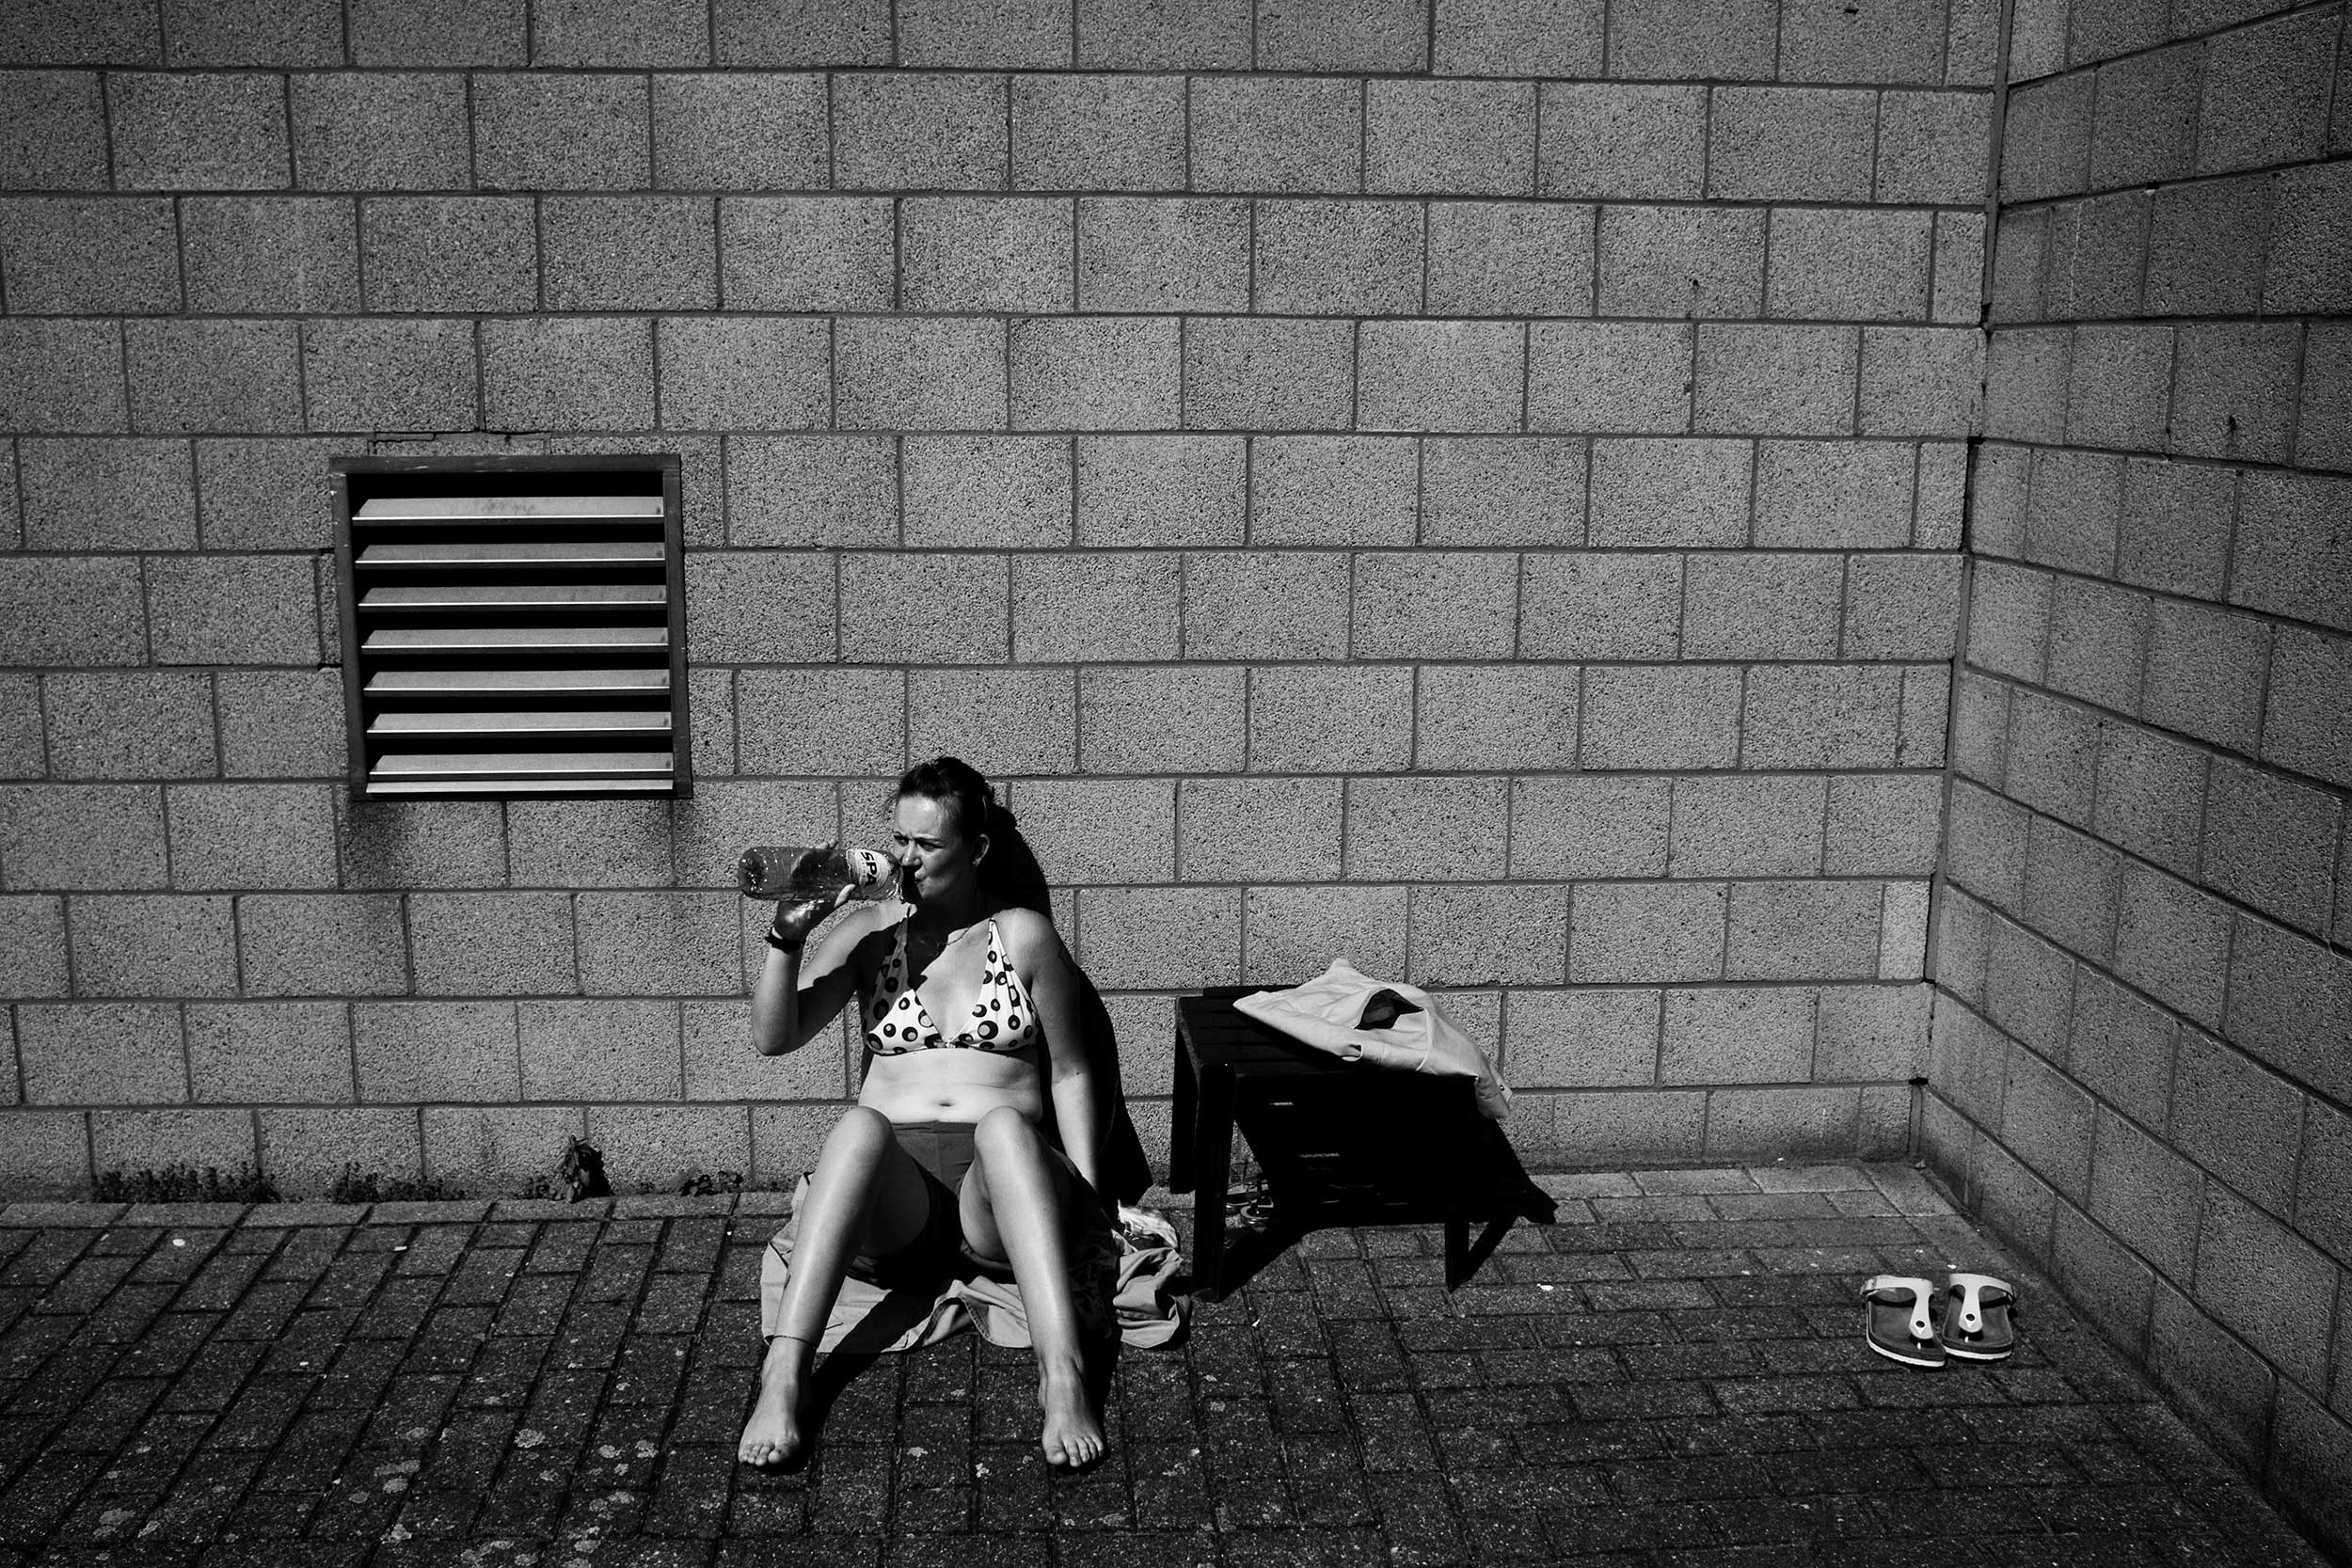 A female prisoner sunbathing at the women's prison in Berkendaele, Brussels. This courtyard is located next to a prison for men, whose cells offer a direct view on the women's courtyard. Some of the women enjoy mocking the men or exposing themselves to them. Brussels, Belgium. July 2011.